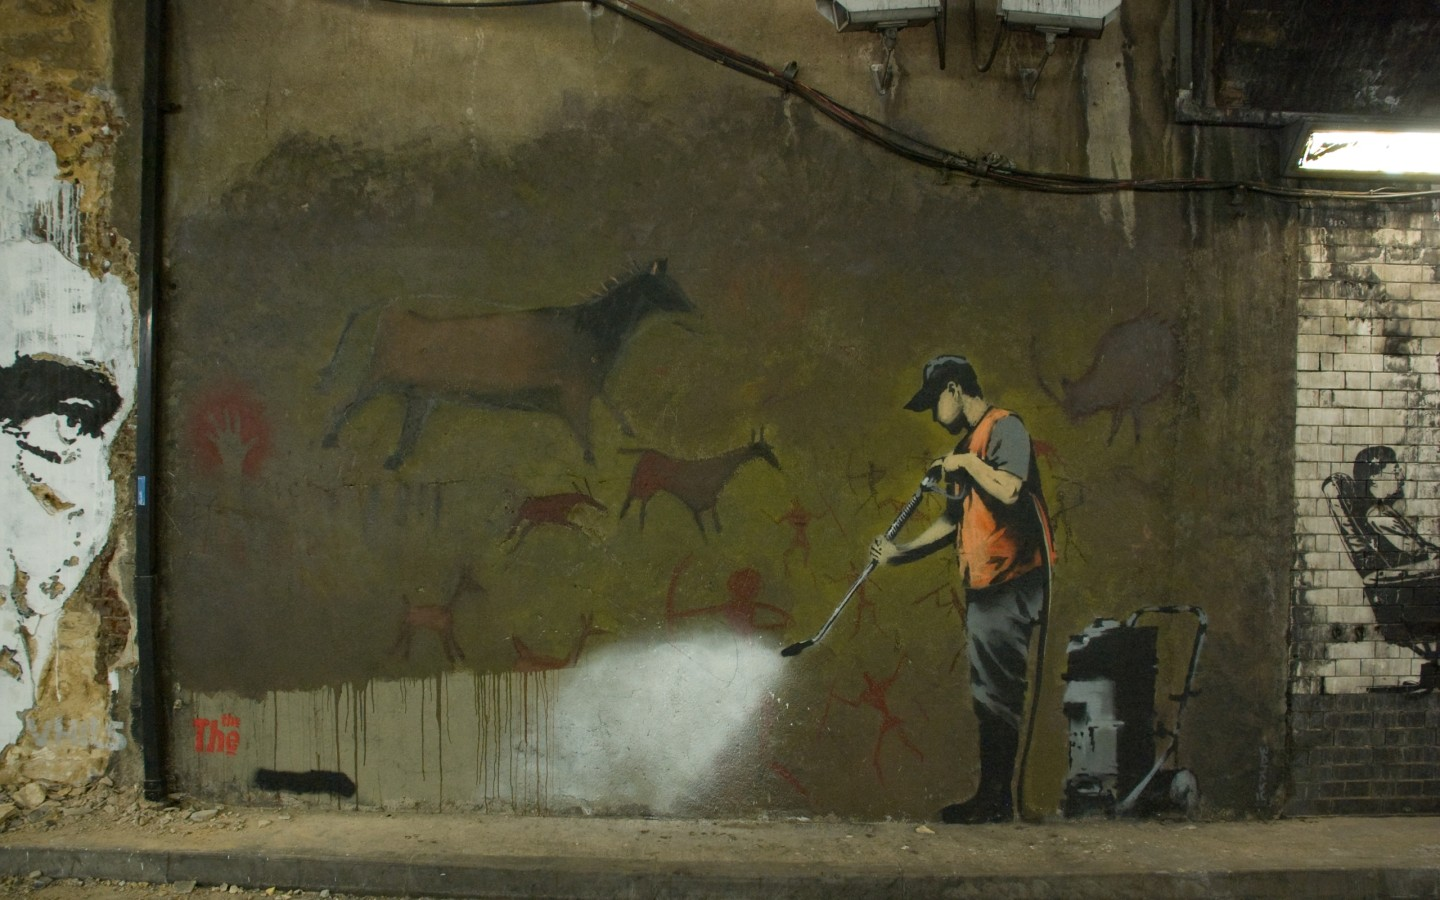 Banksy Hd Wallpaper: Banksy Art Wallpaper